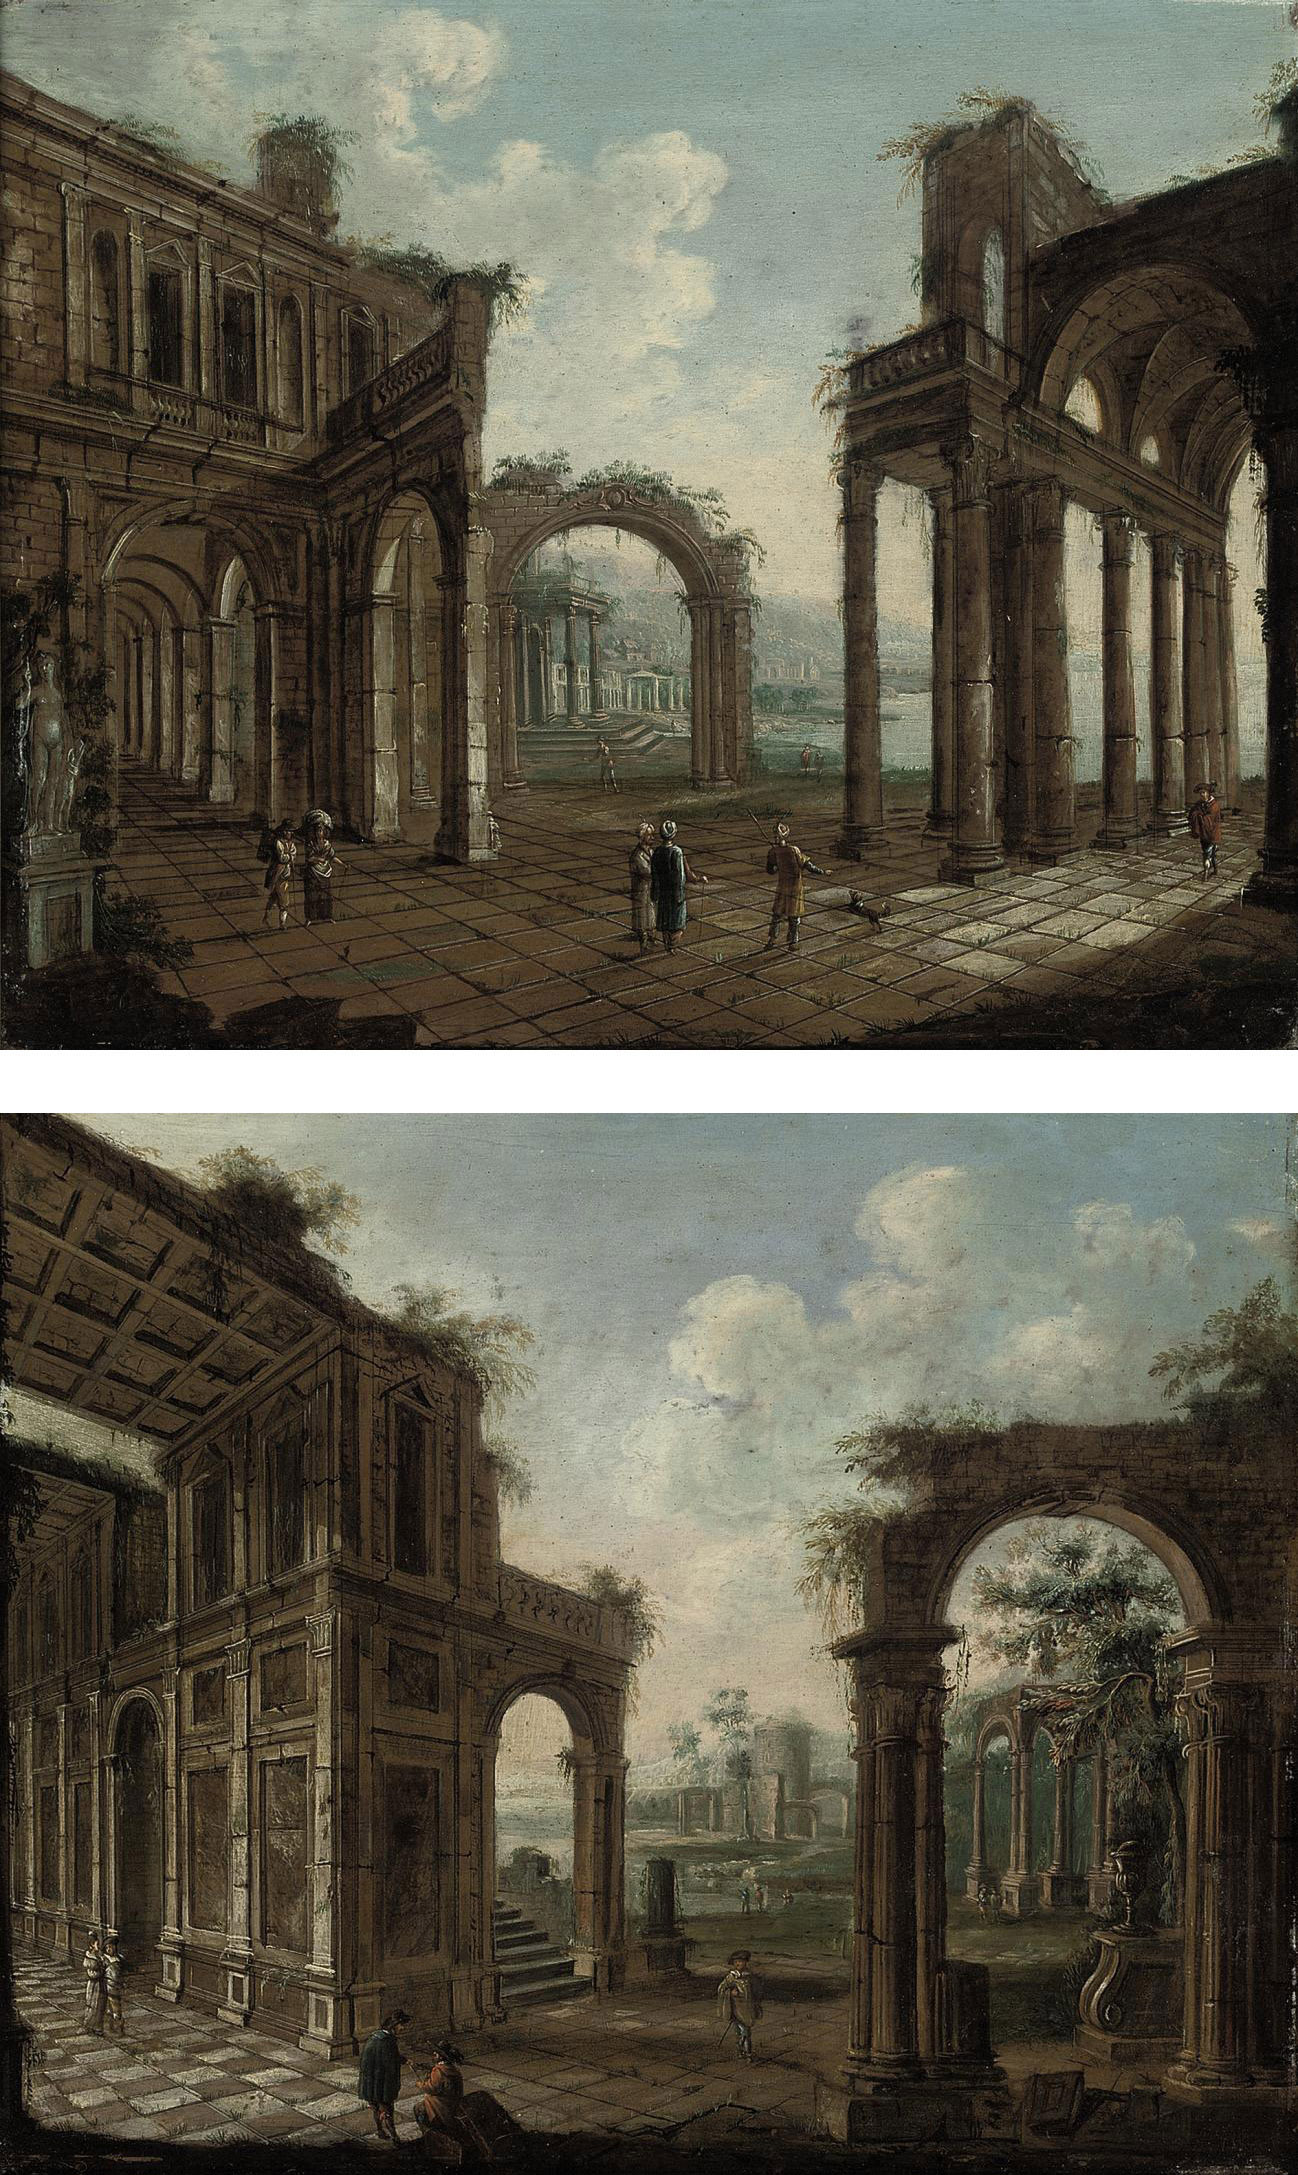 An architectural capriccio of classical ruins with travellers; and An architectural capriccio of classical ruins with figures in Oriental costumes conversing in the foreground